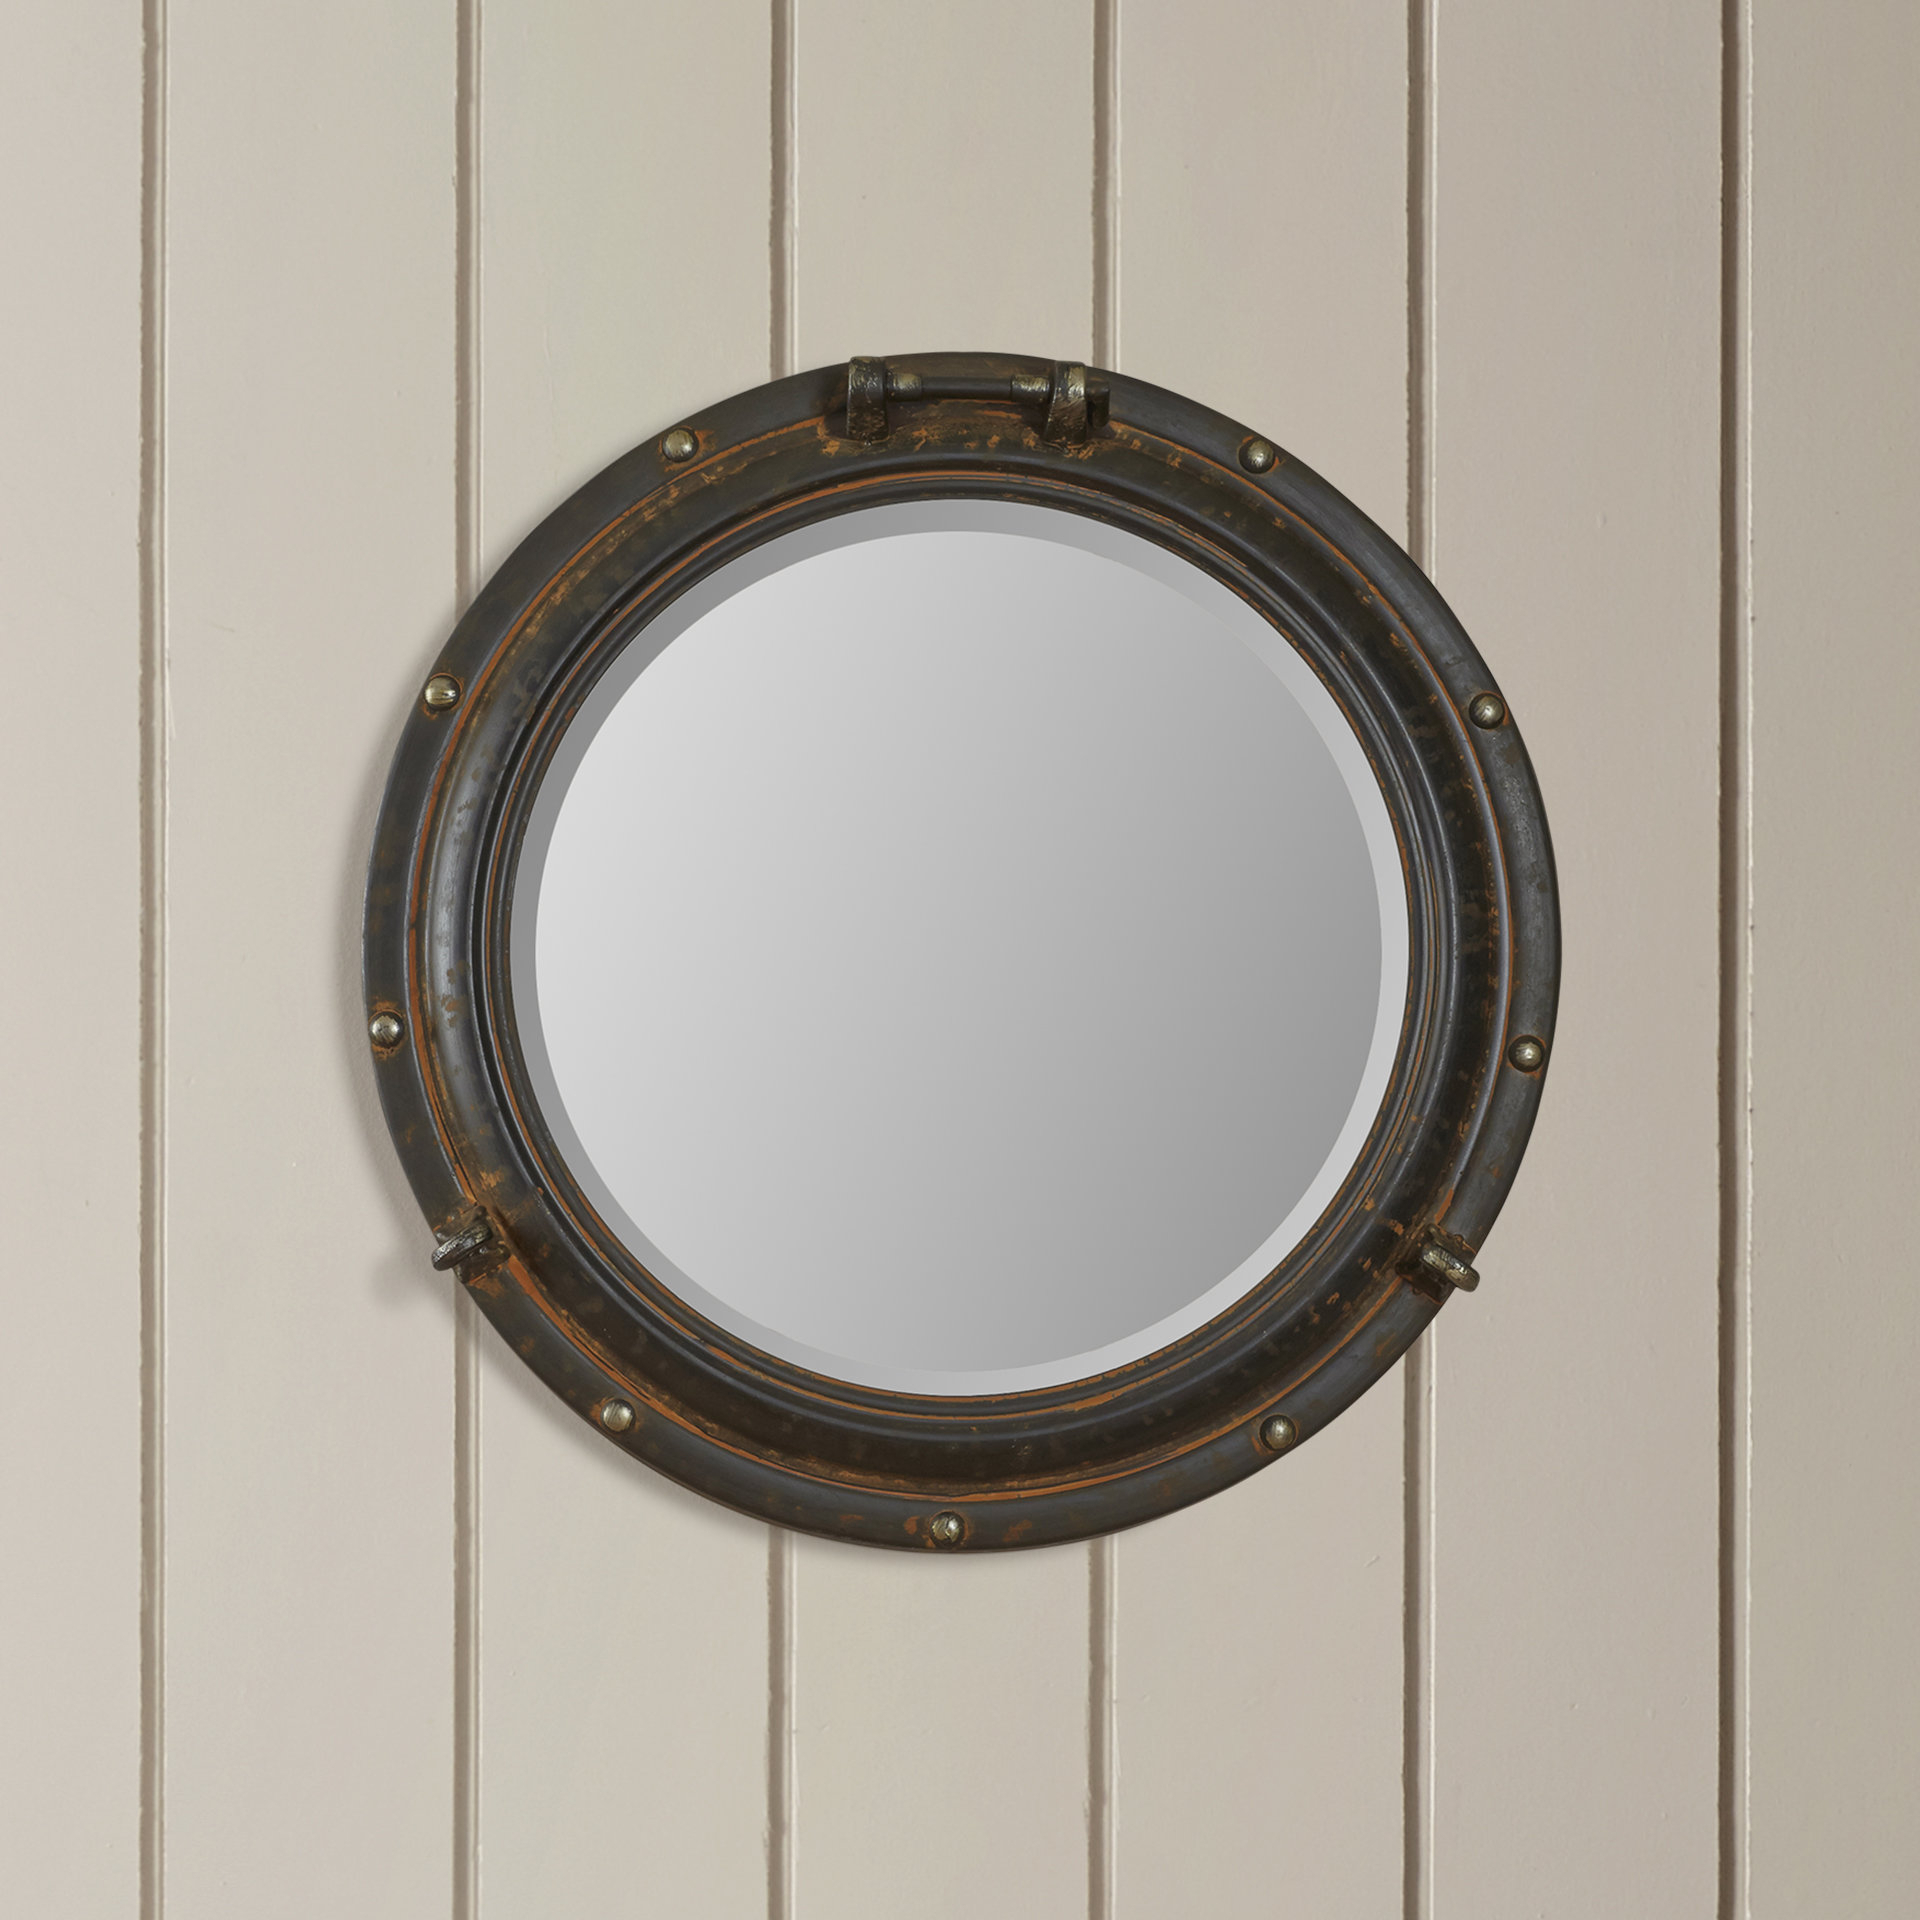 Beachcrest Home Alie Traditional Beveled Distressed Accent Mirror Inside Widely Used Alie Traditional Beveled Distressed Accent Mirrors (View 7 of 20)